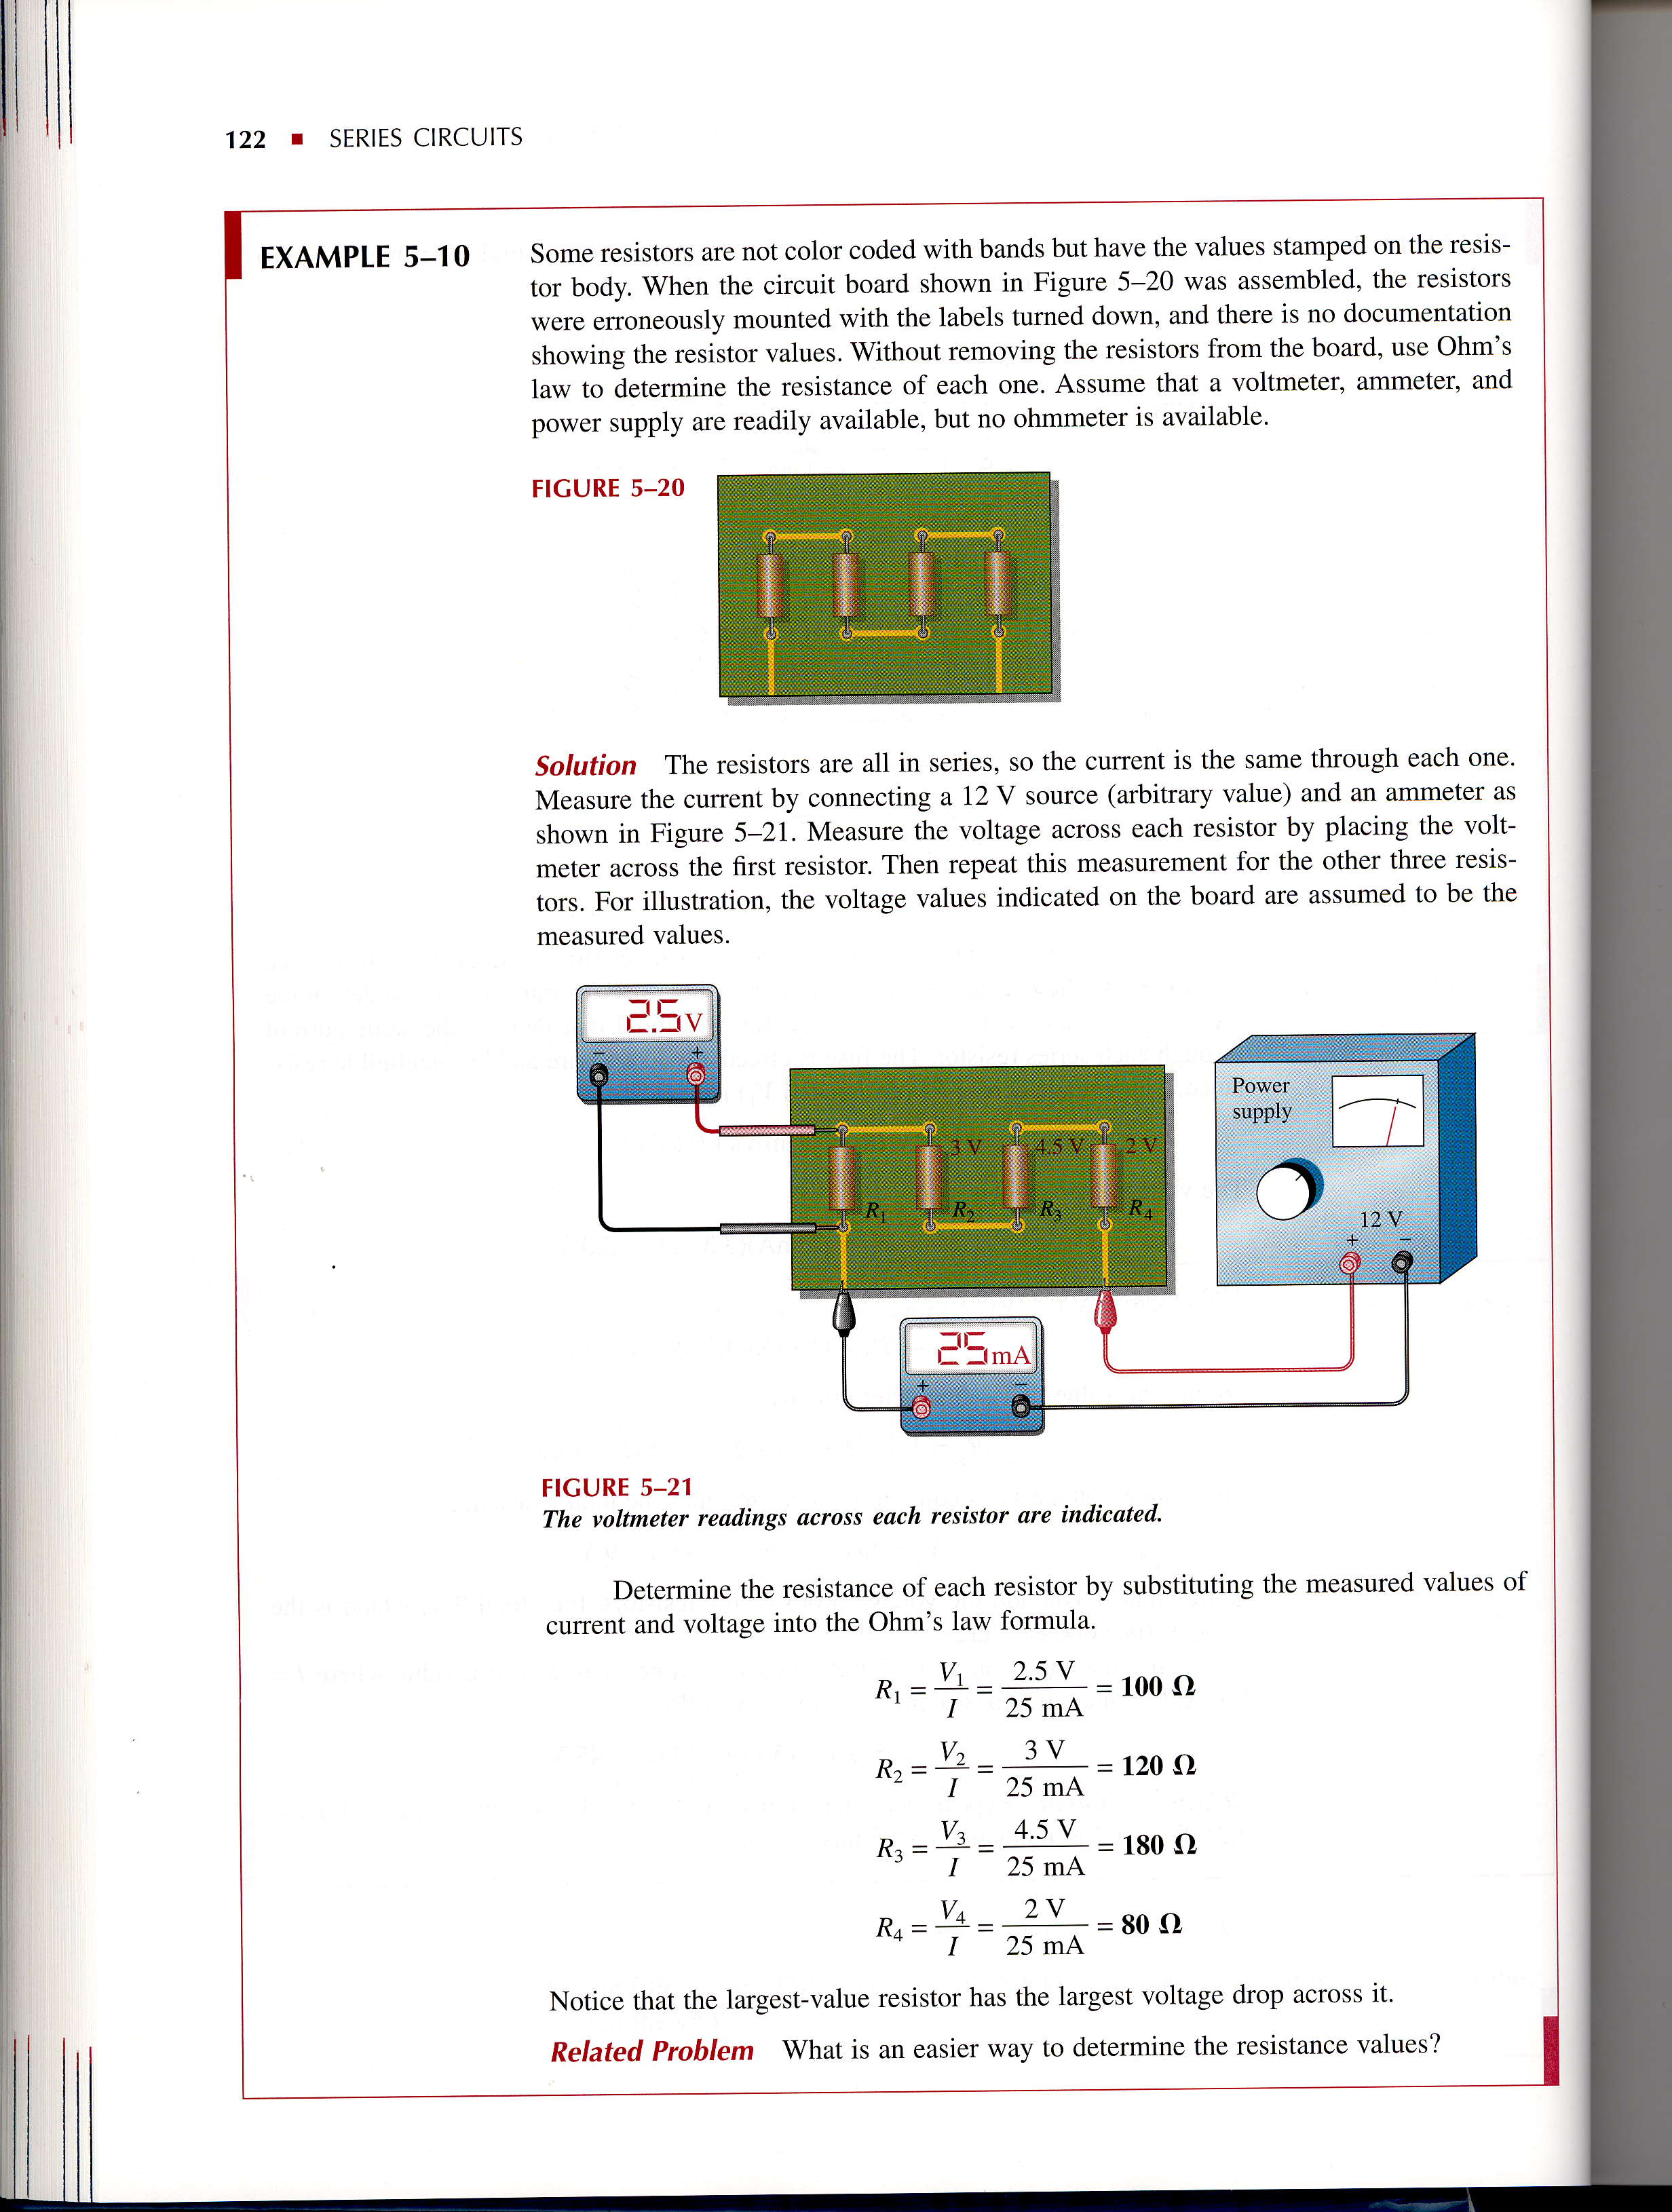 Series Circuits R Introduction Pdf Gt Simple Example For The Lm386 Ic Audio Amplifier Seriescircuits 5 10 Some Resistors Are Not Color Coded With Bands But Have